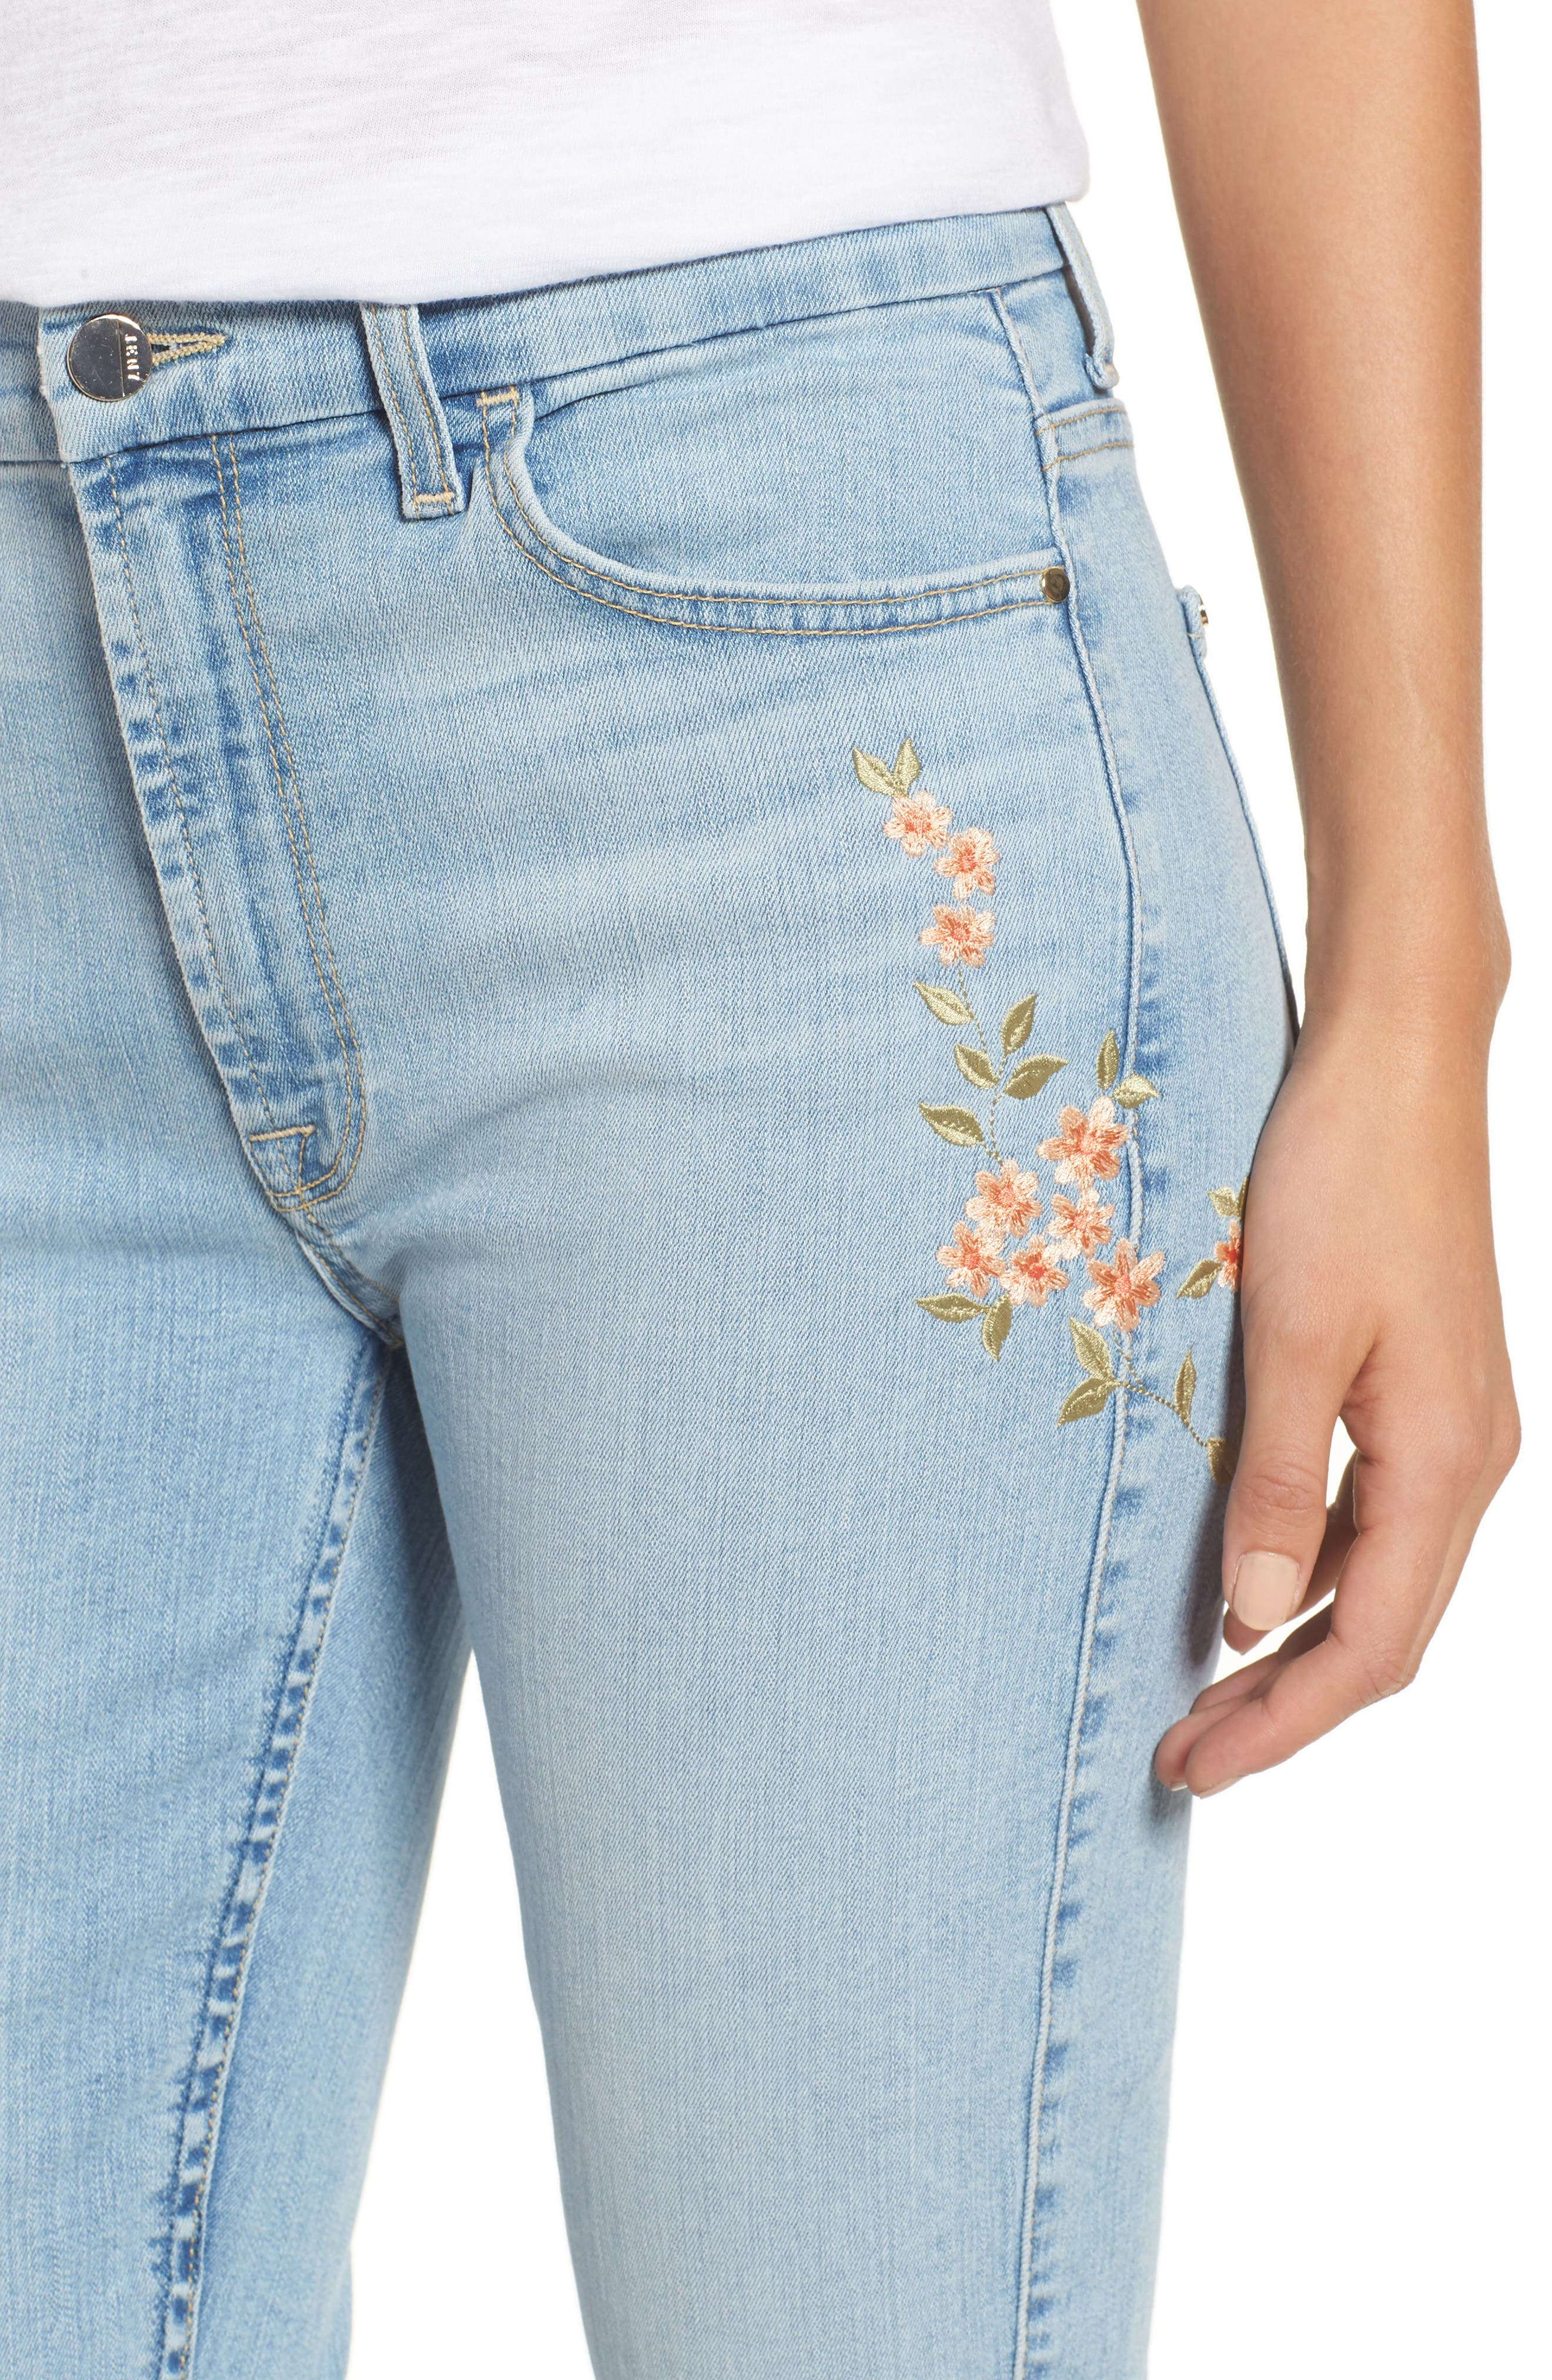 JEN7 BY 7 FOR ALL MANKIND, Embroidered Slim Boyfriend Jeans, Alternate thumbnail 5, color, RICHE TOUCH PLAYA VISTA